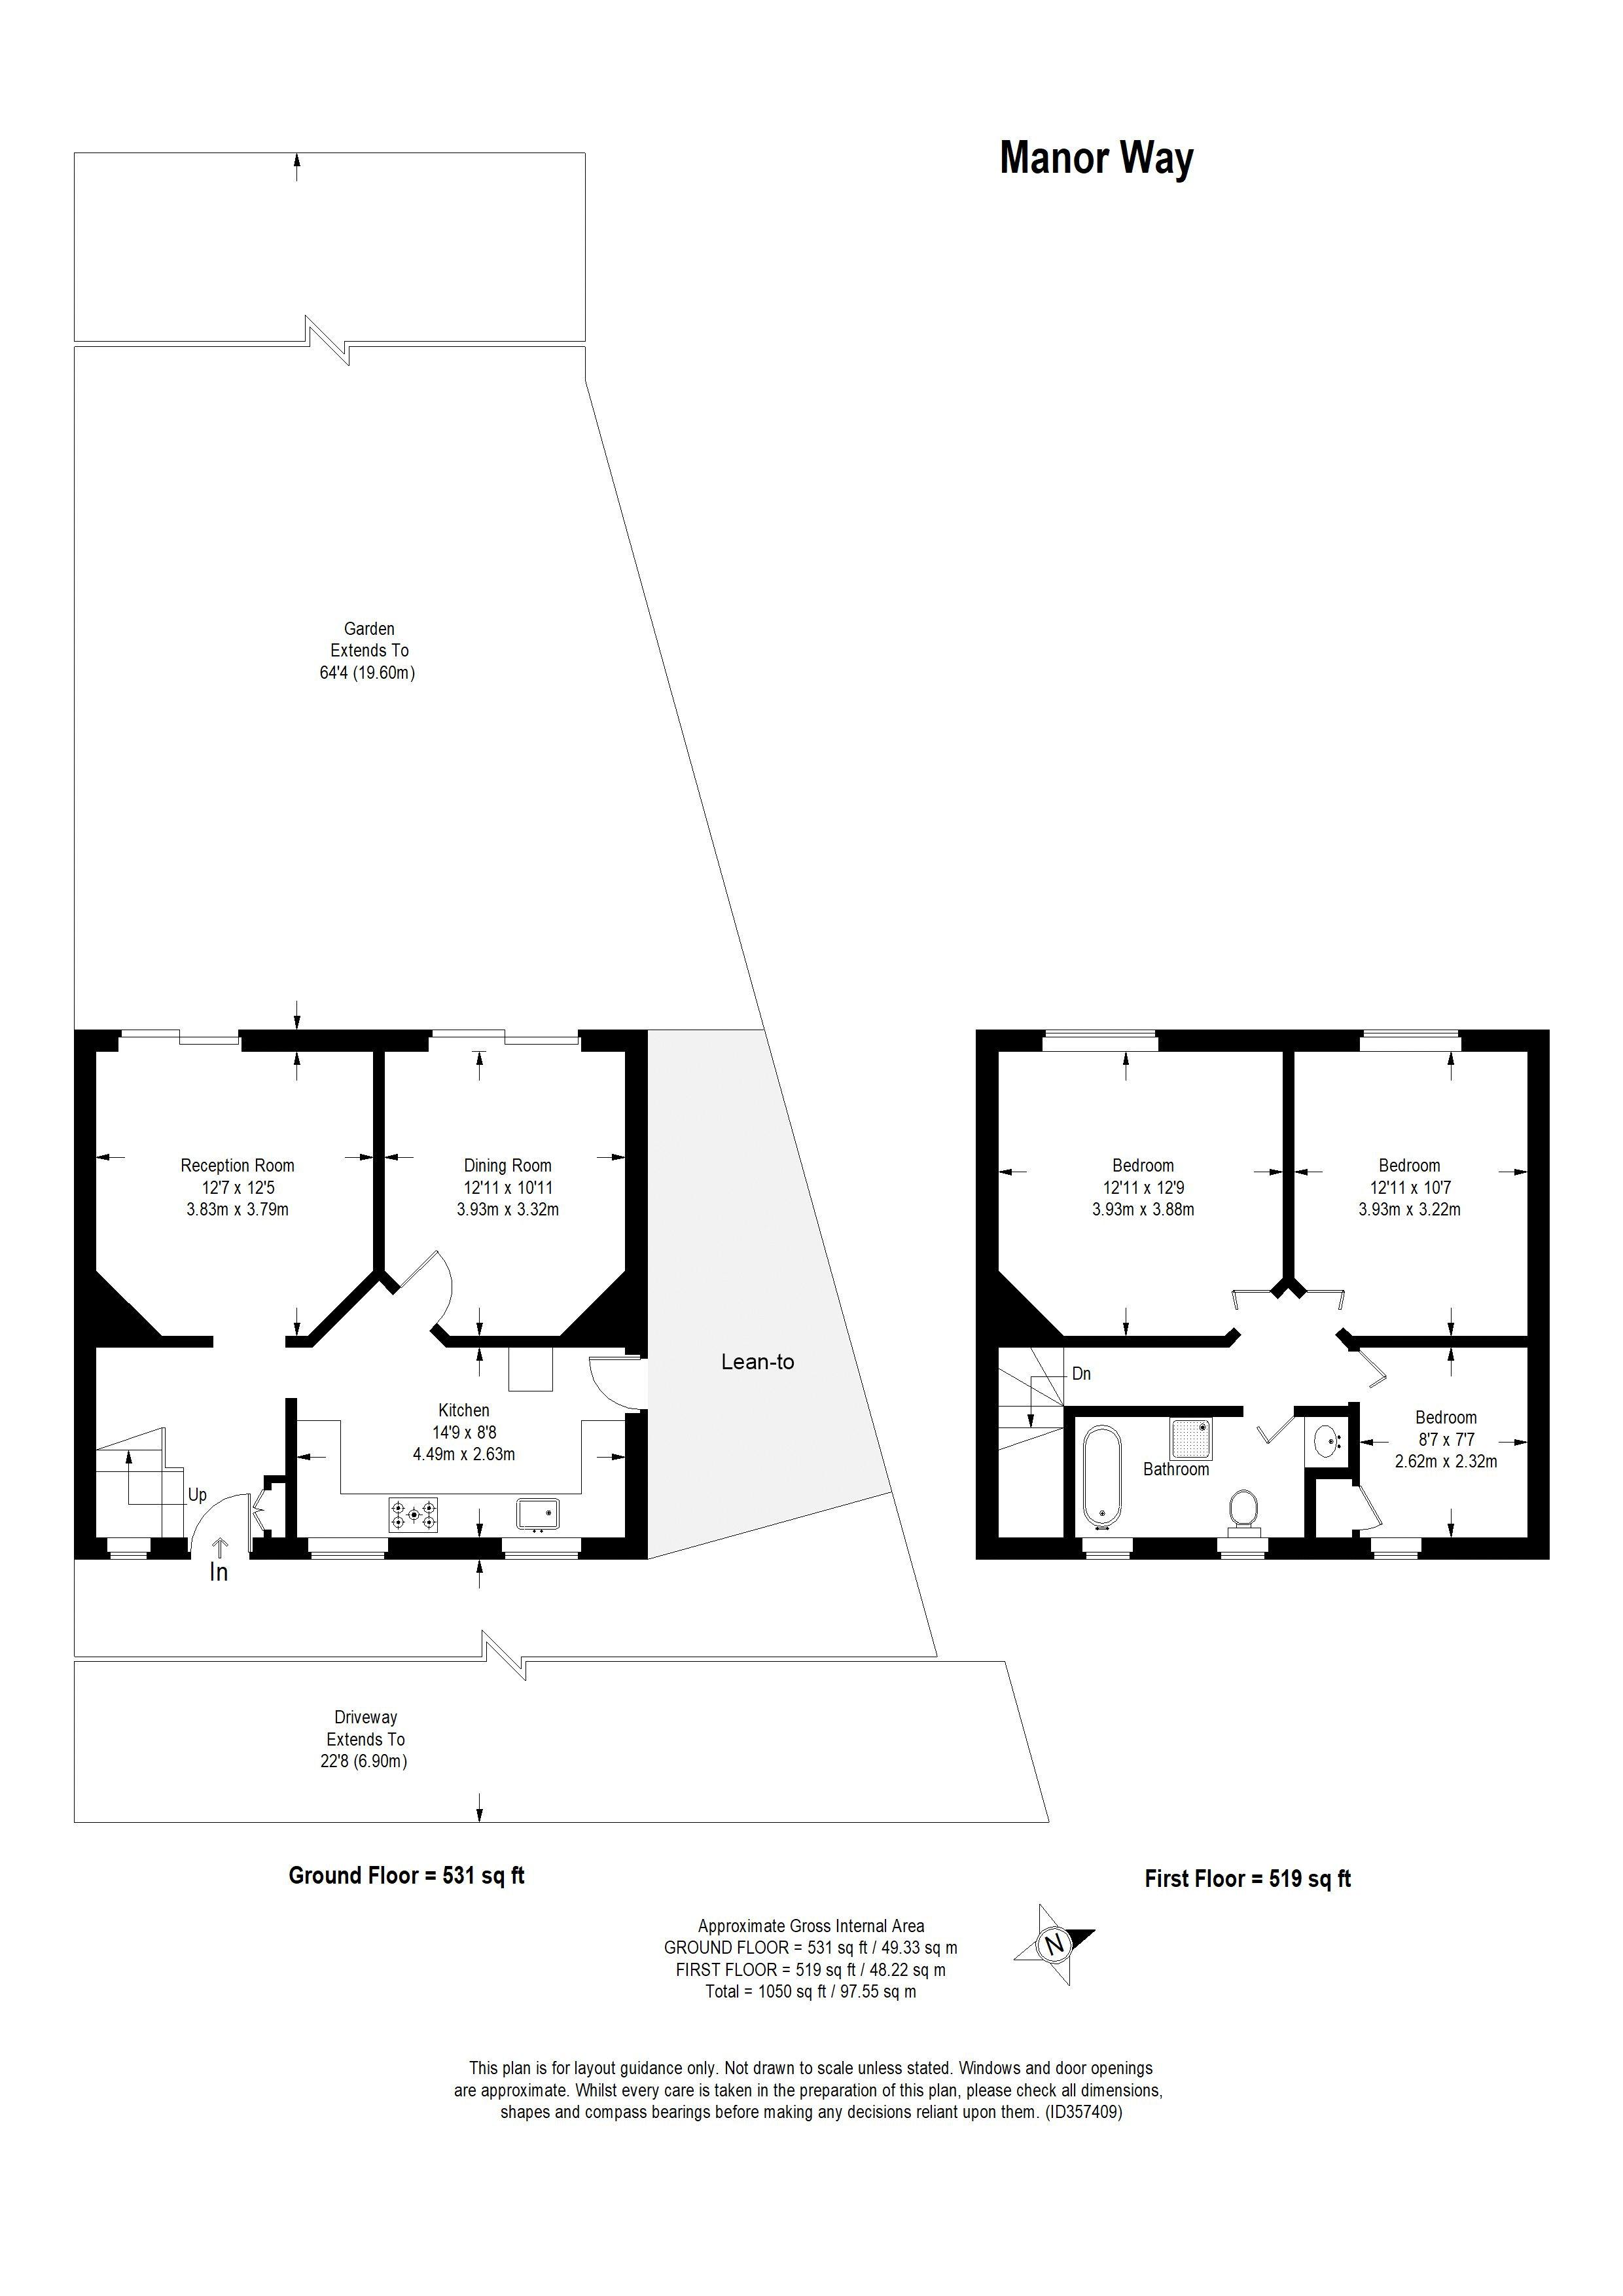 Floorplans For Manor Way, Bromley